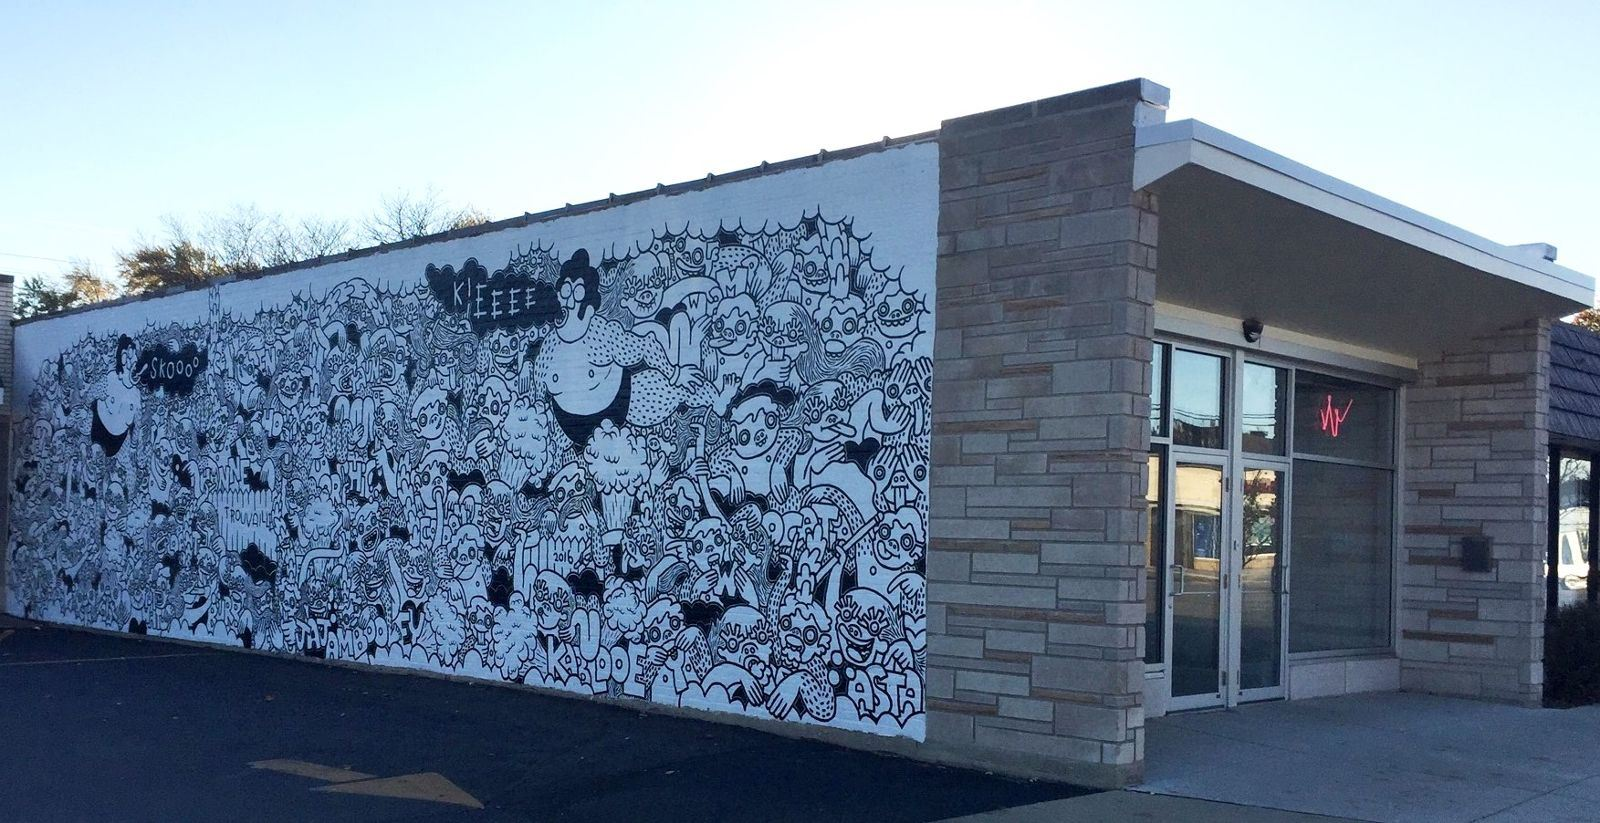 Image of building side, with black and white doodle-like art painted